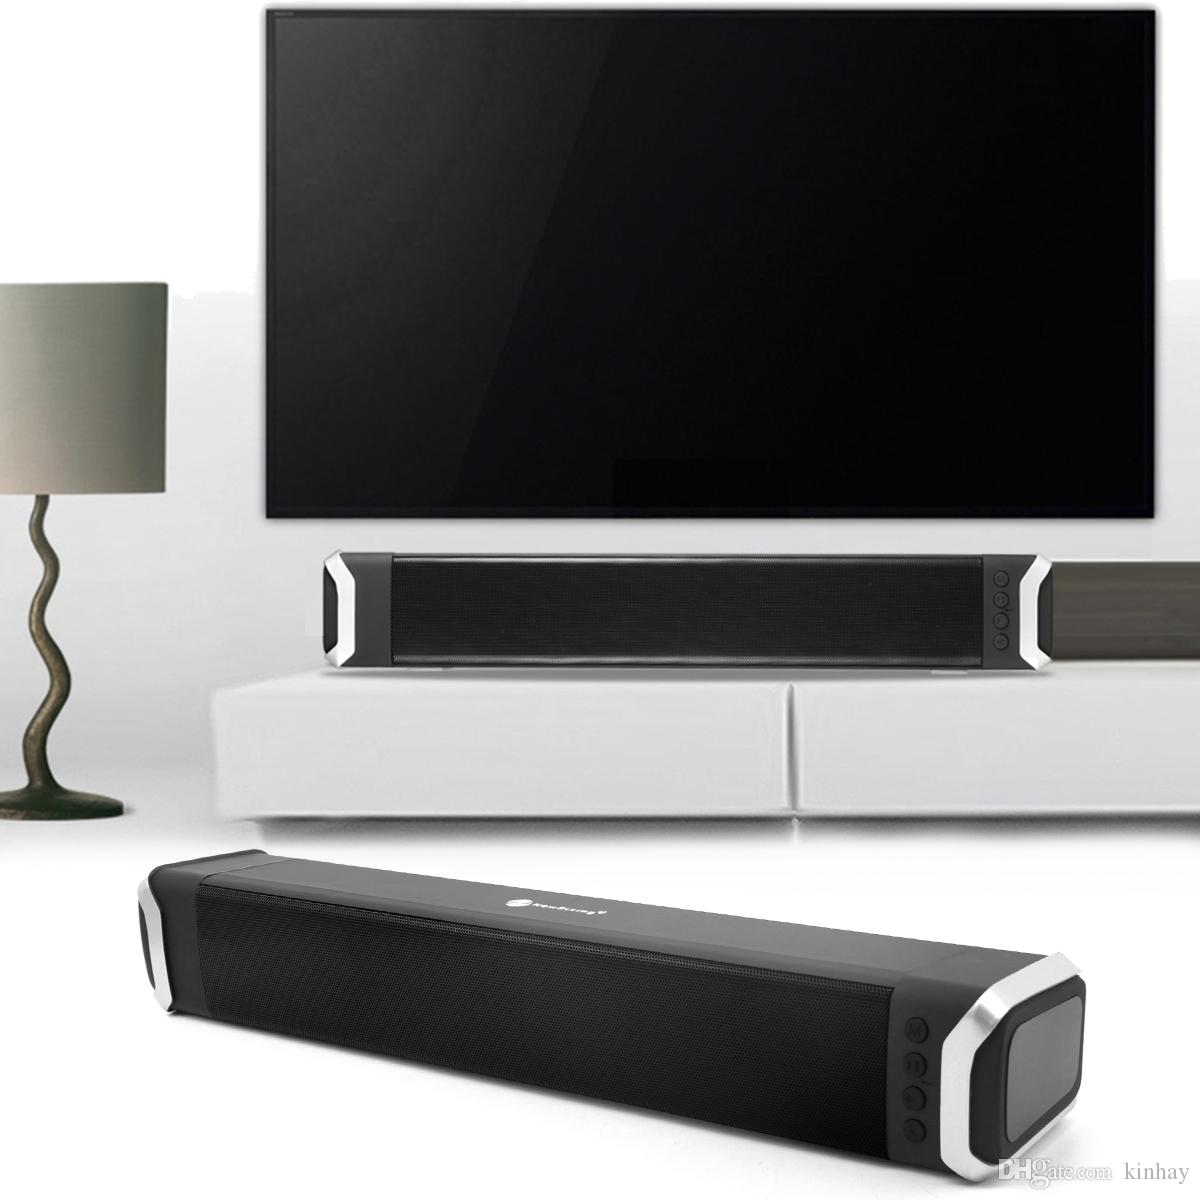 2018 Dhl Free Soundbar Home Theater Tv Speaker, Wired And Wireless ...